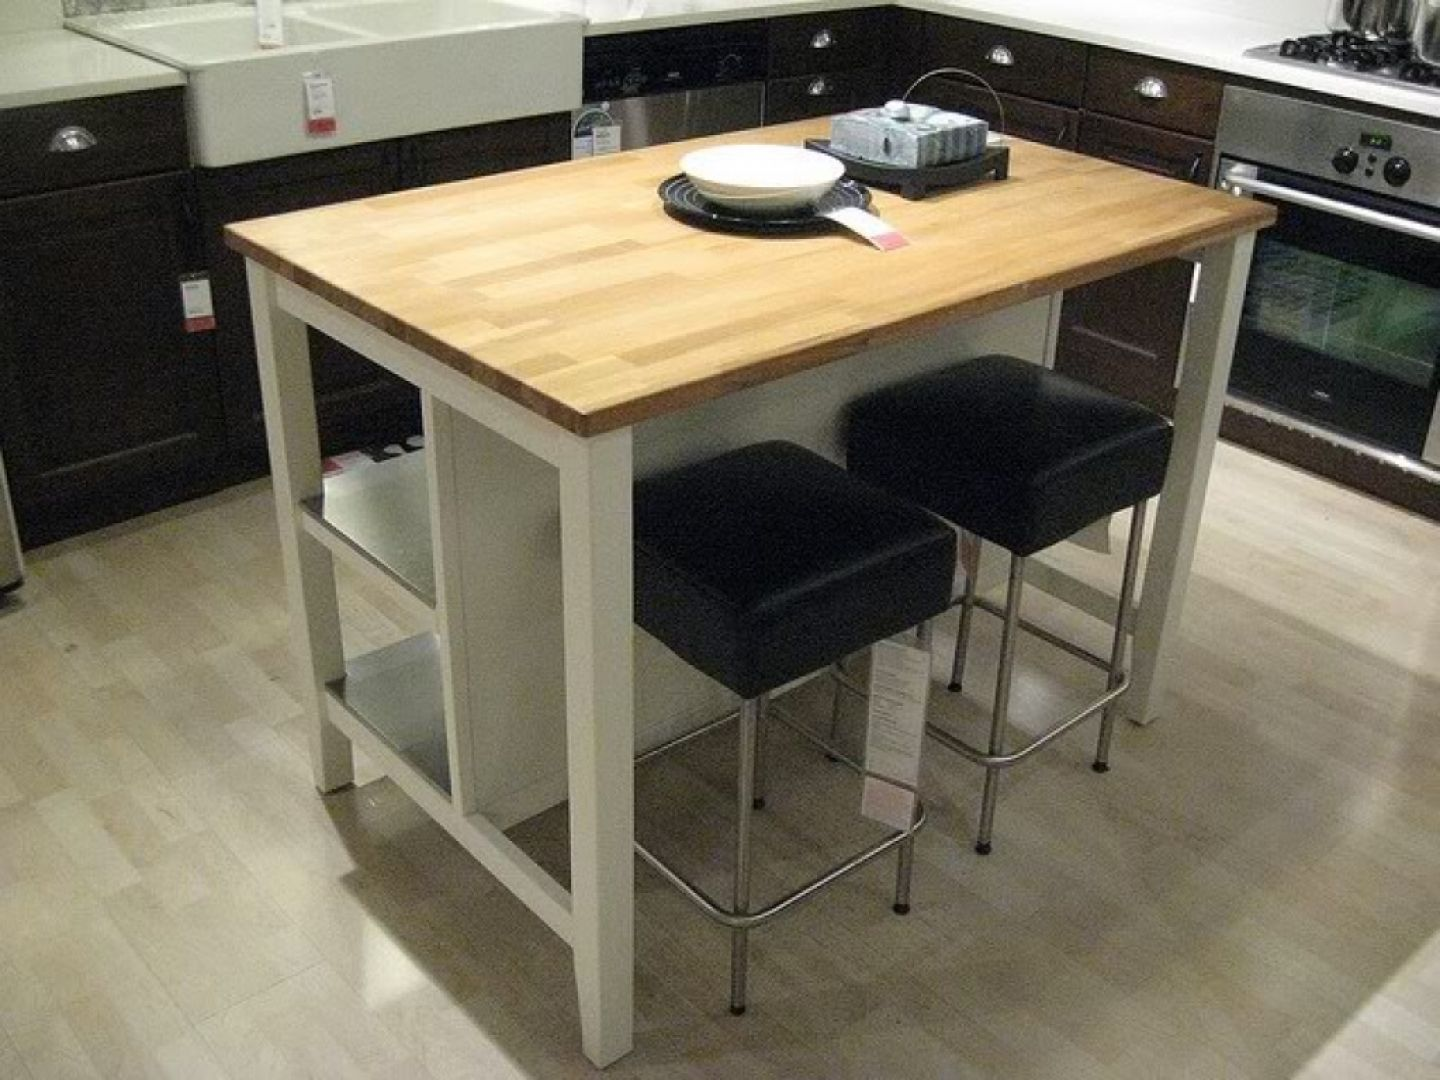 Creative Want It Now Ikea Kitchen Island Picture Apartment Living Pinterest Island